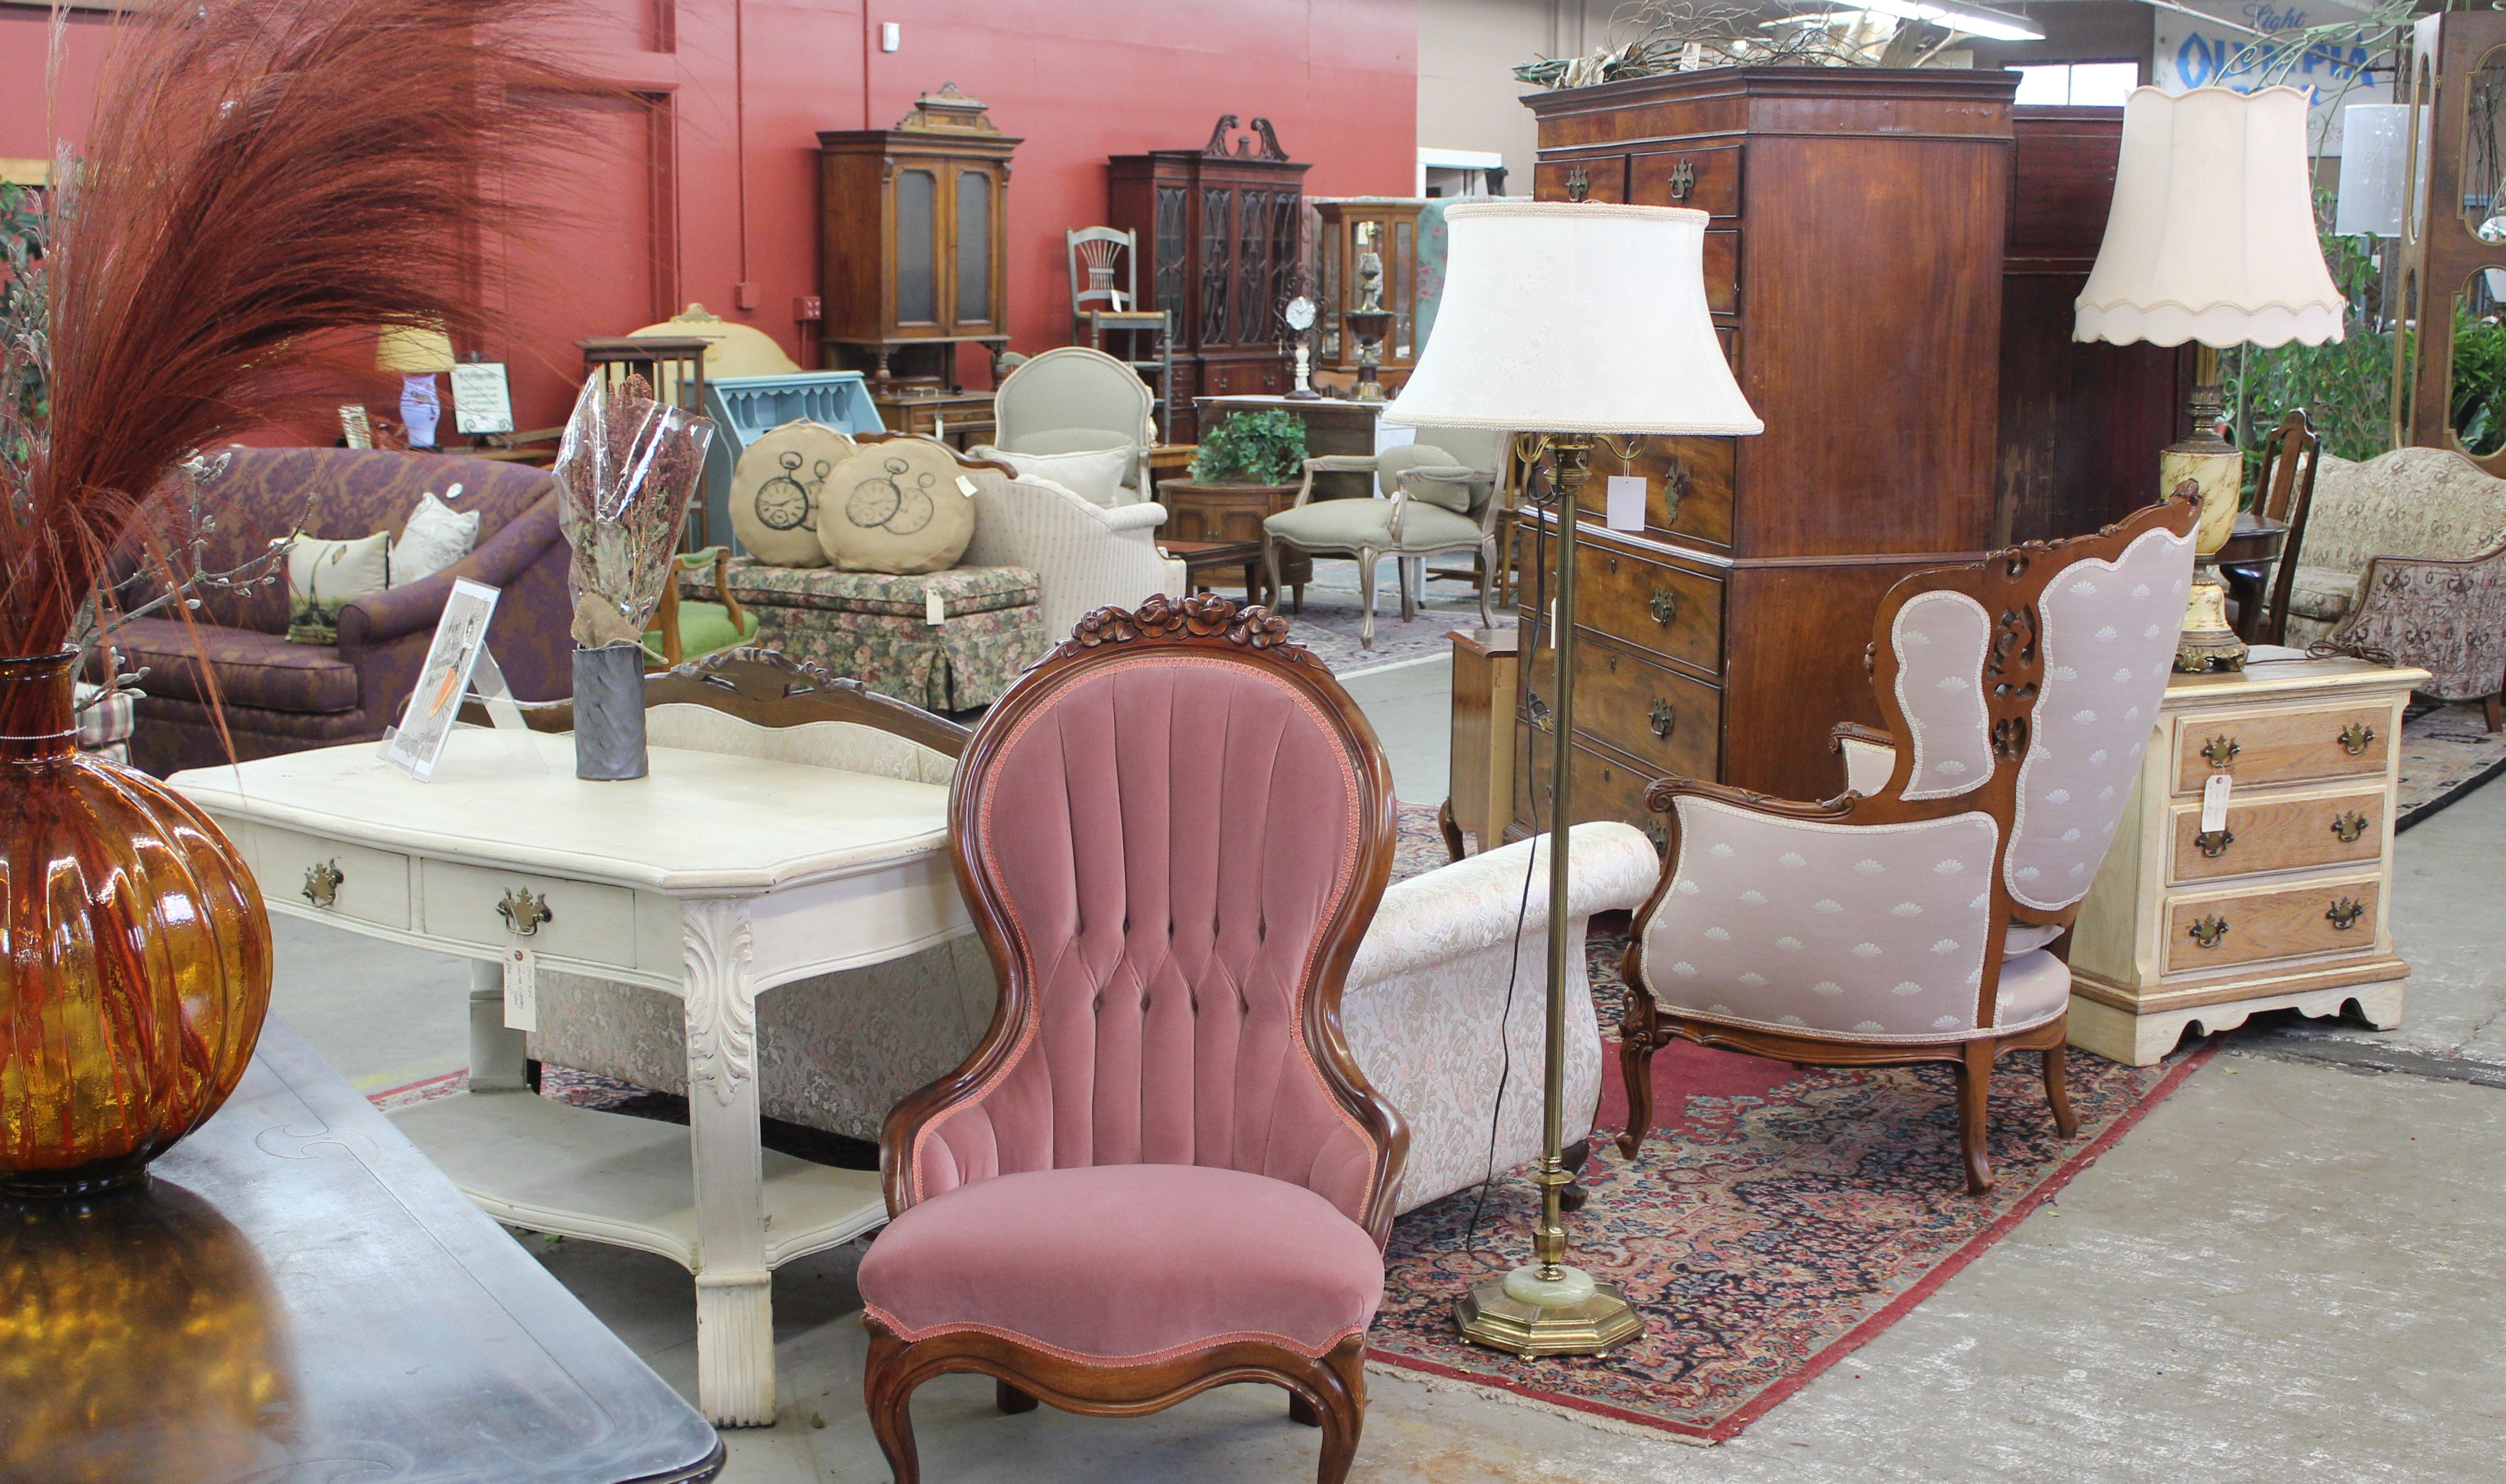 Couches Clocks Armoires And More We Offer Our Own Hand Selected Items As Well Consignment From Locals Just Like You